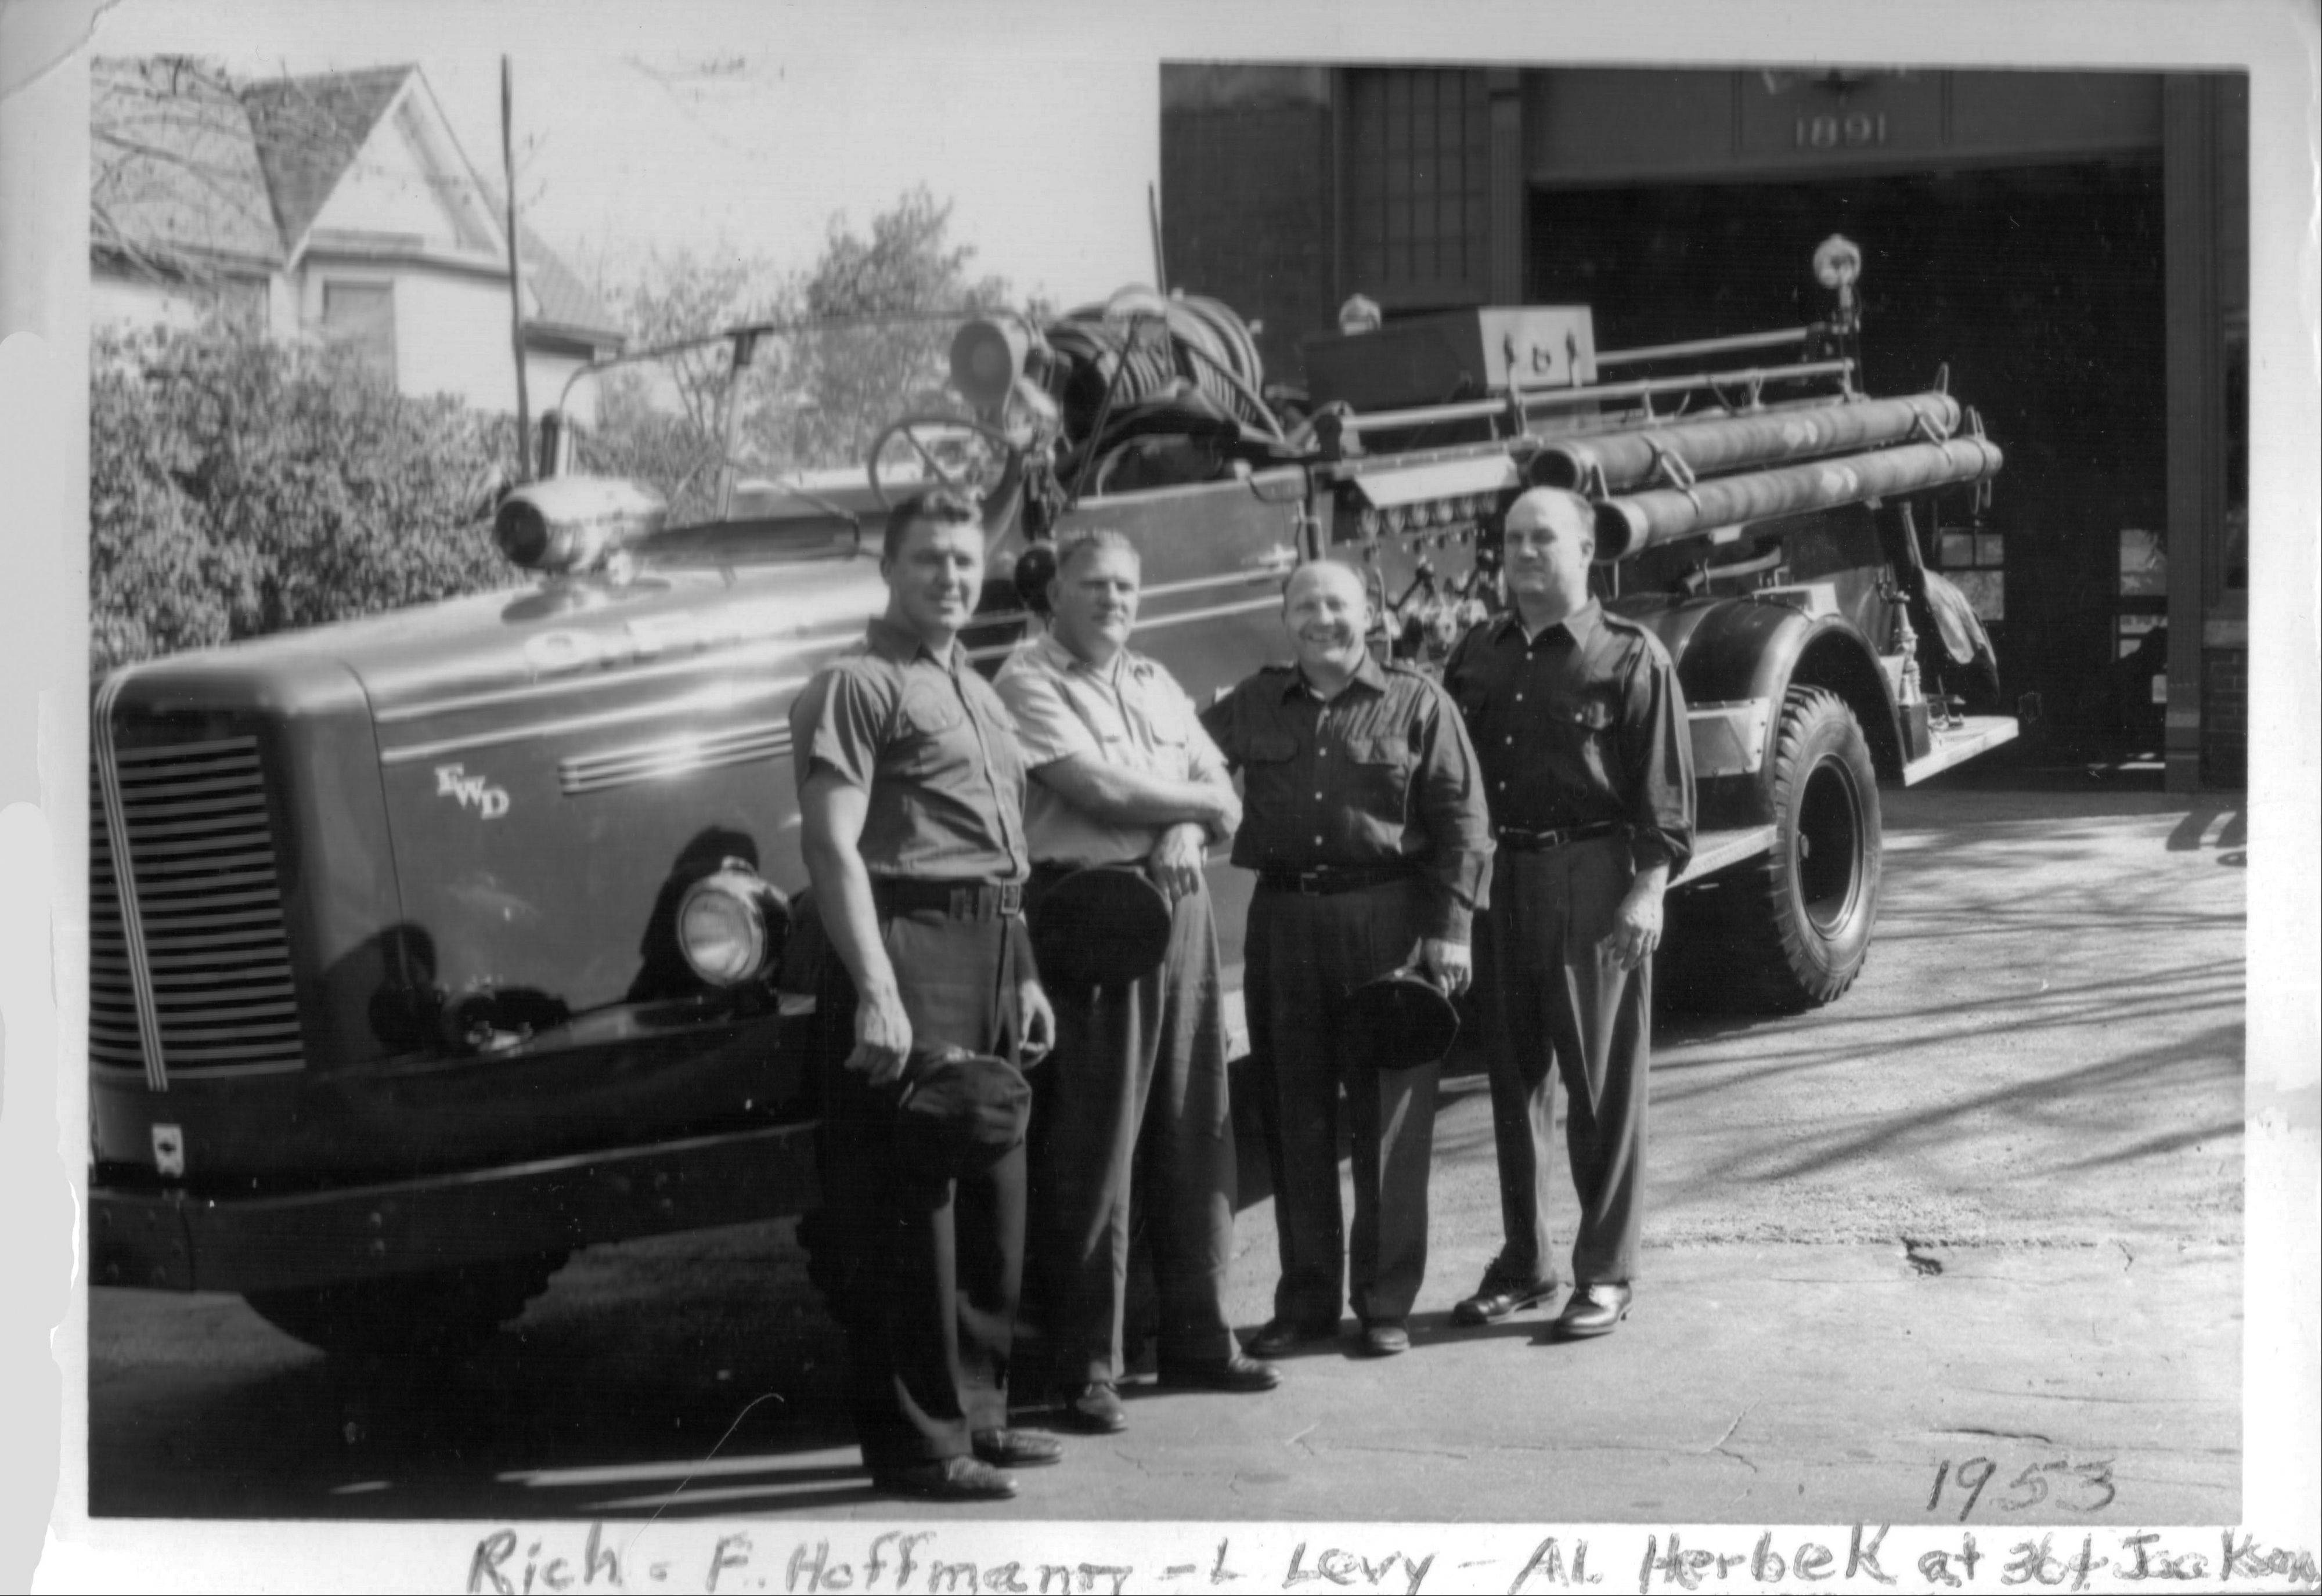 This 1953 photo provided by the Omaha Fire Department shows Richard Lang, left, standing with others next to a fire truck in Omaha, Neb.